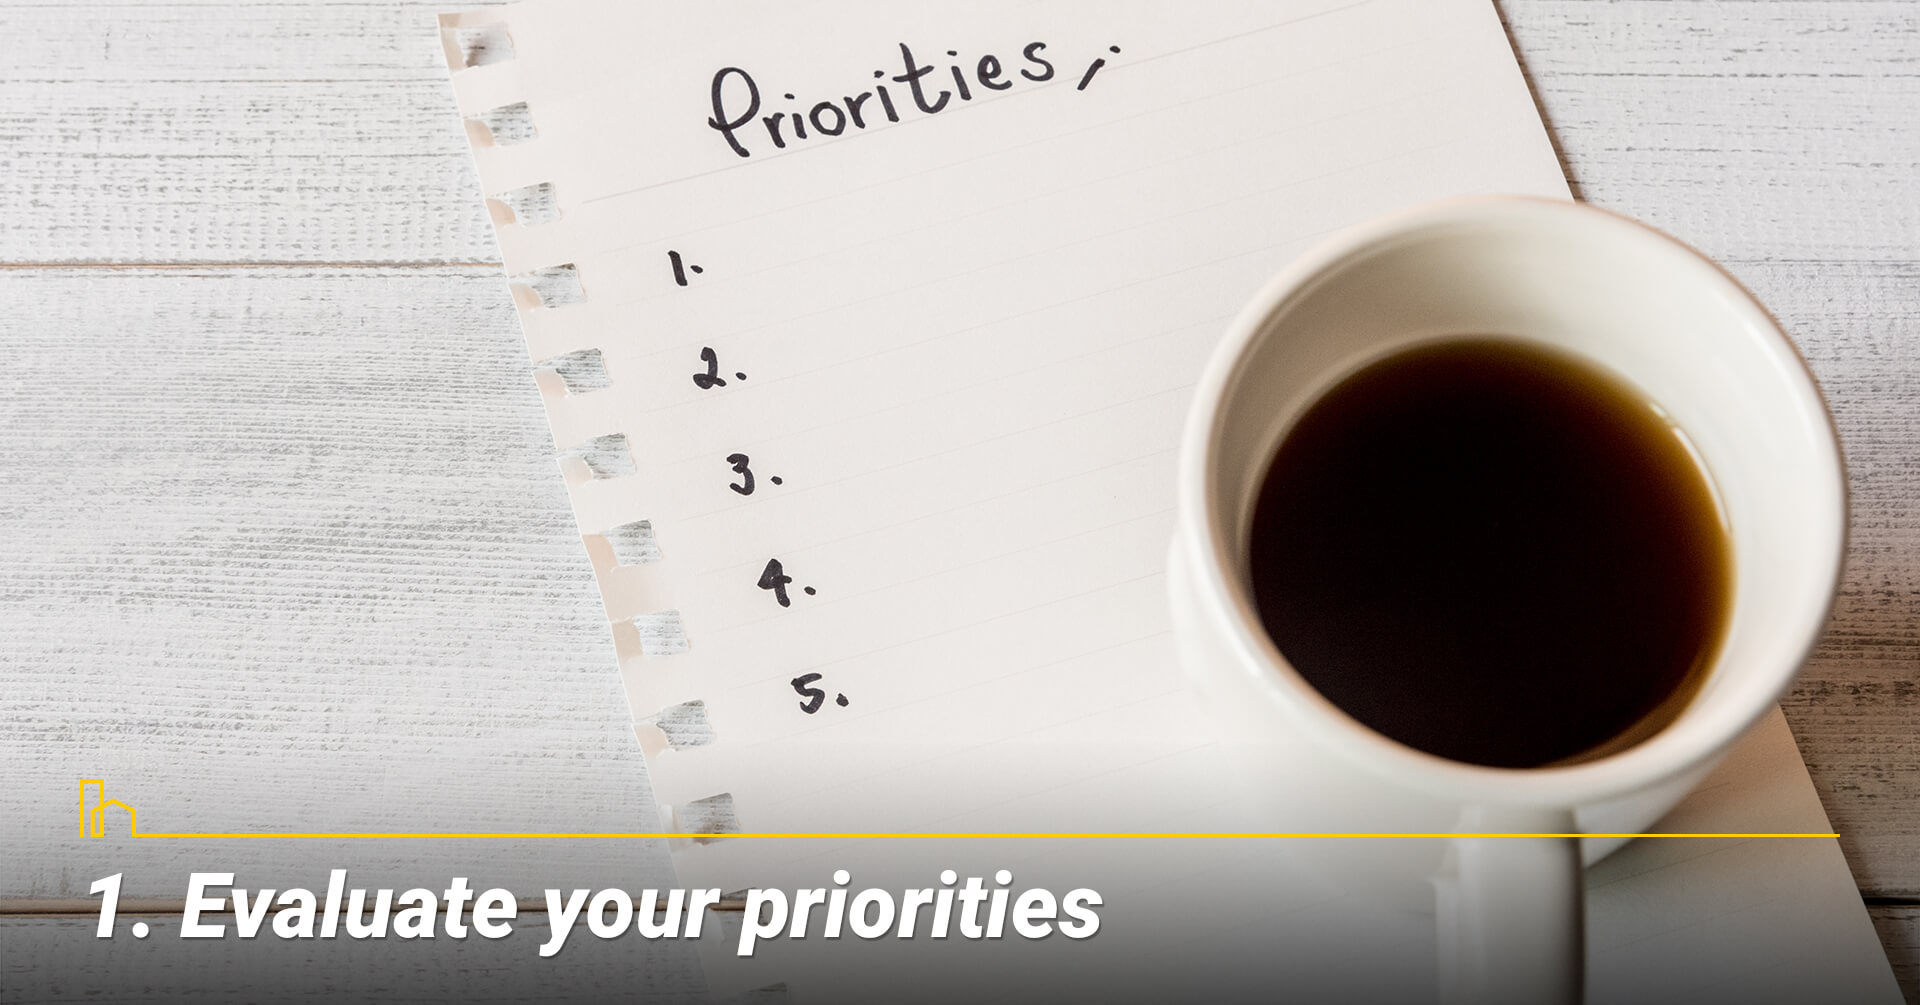 Evaluate your priorities, know what your needs and wants